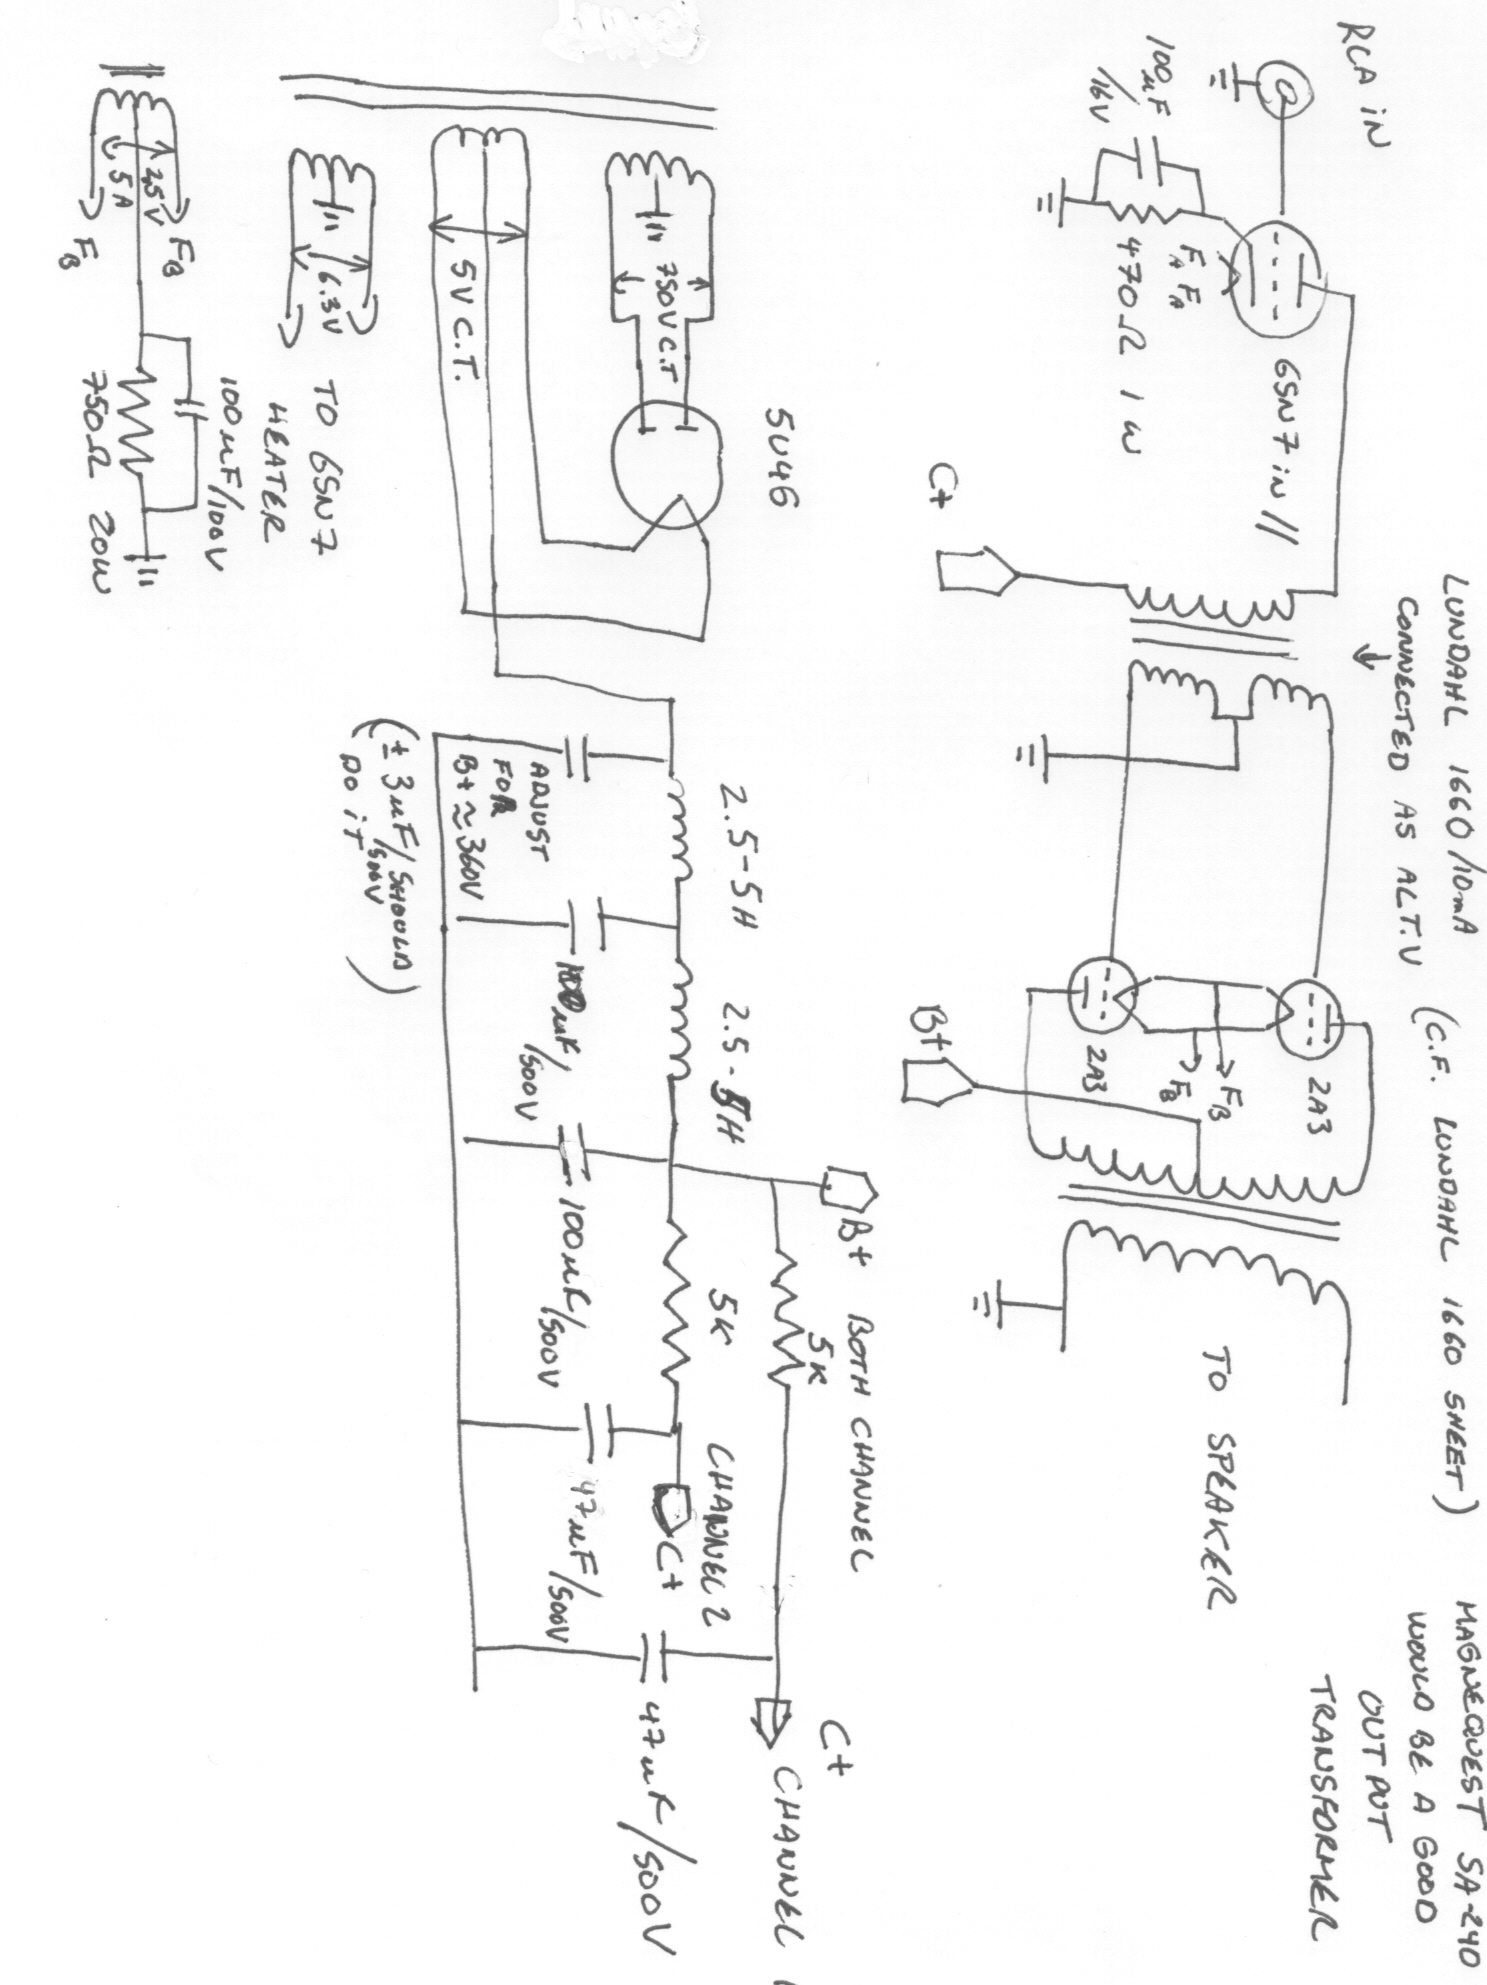 Pantheon Preamp Schematic